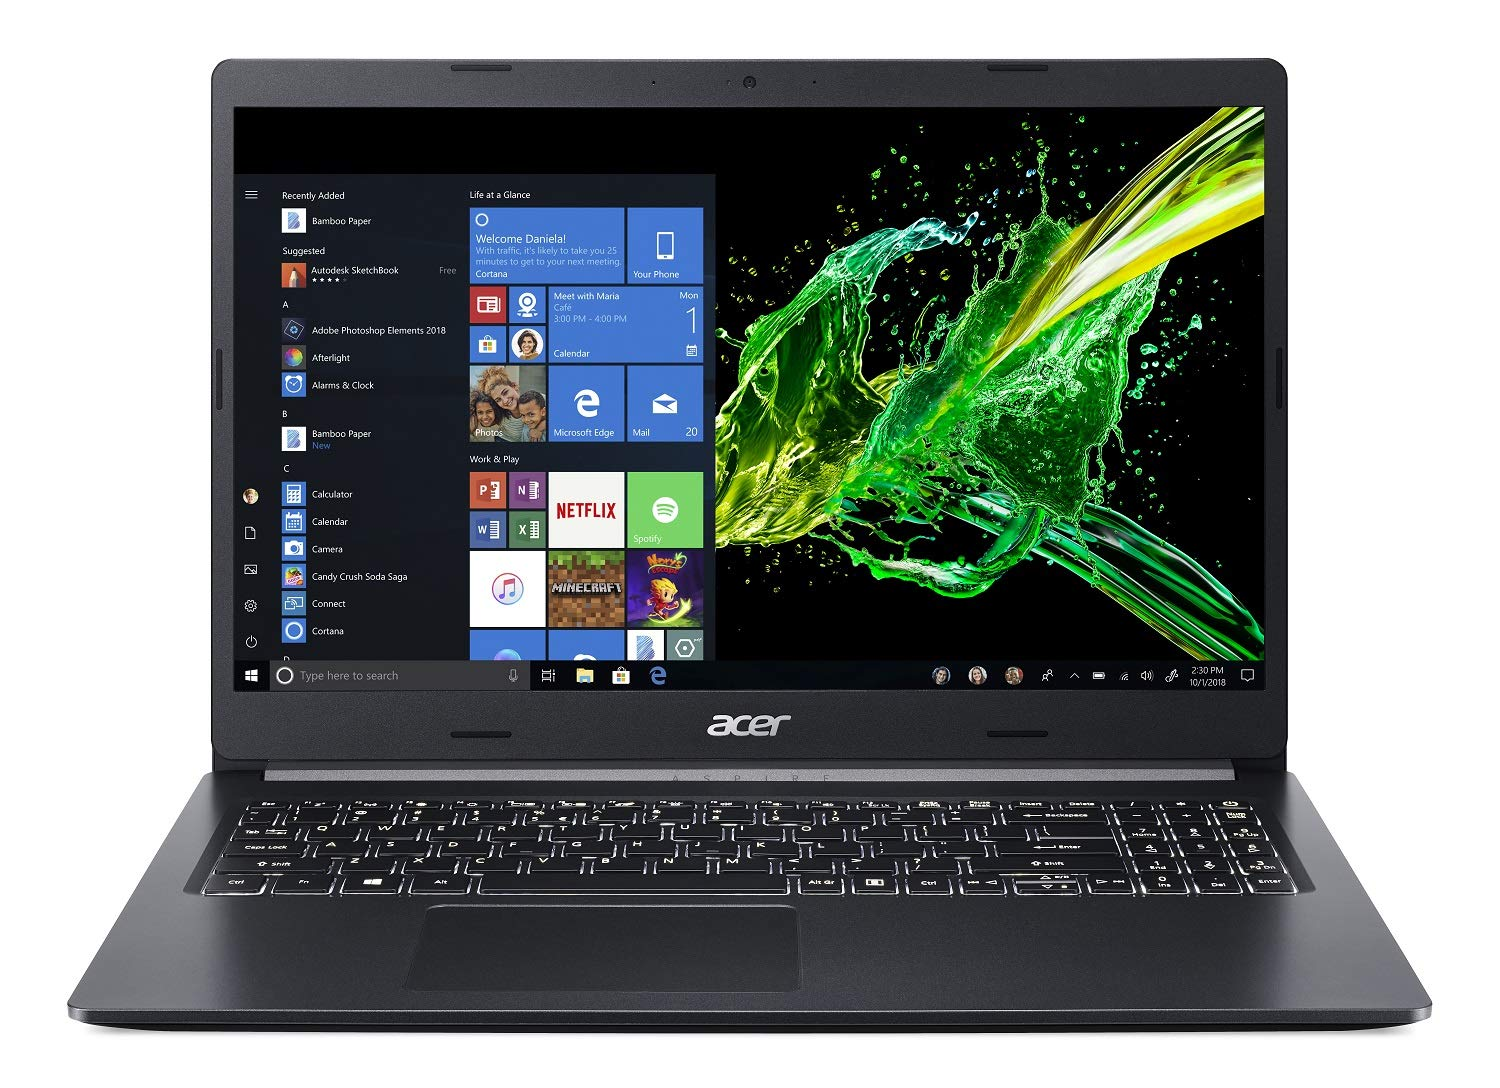 "Acer Aspire 5 Slim Laptop, 15.6"" Full HD IPS Display, 8th Gen Intel Core i7-8565U, NVIDIA GeForce MX250, 12GB DDR4, 512GB PCIe Nvme SSD, Windows 10 Home, A515-54G-73WC"